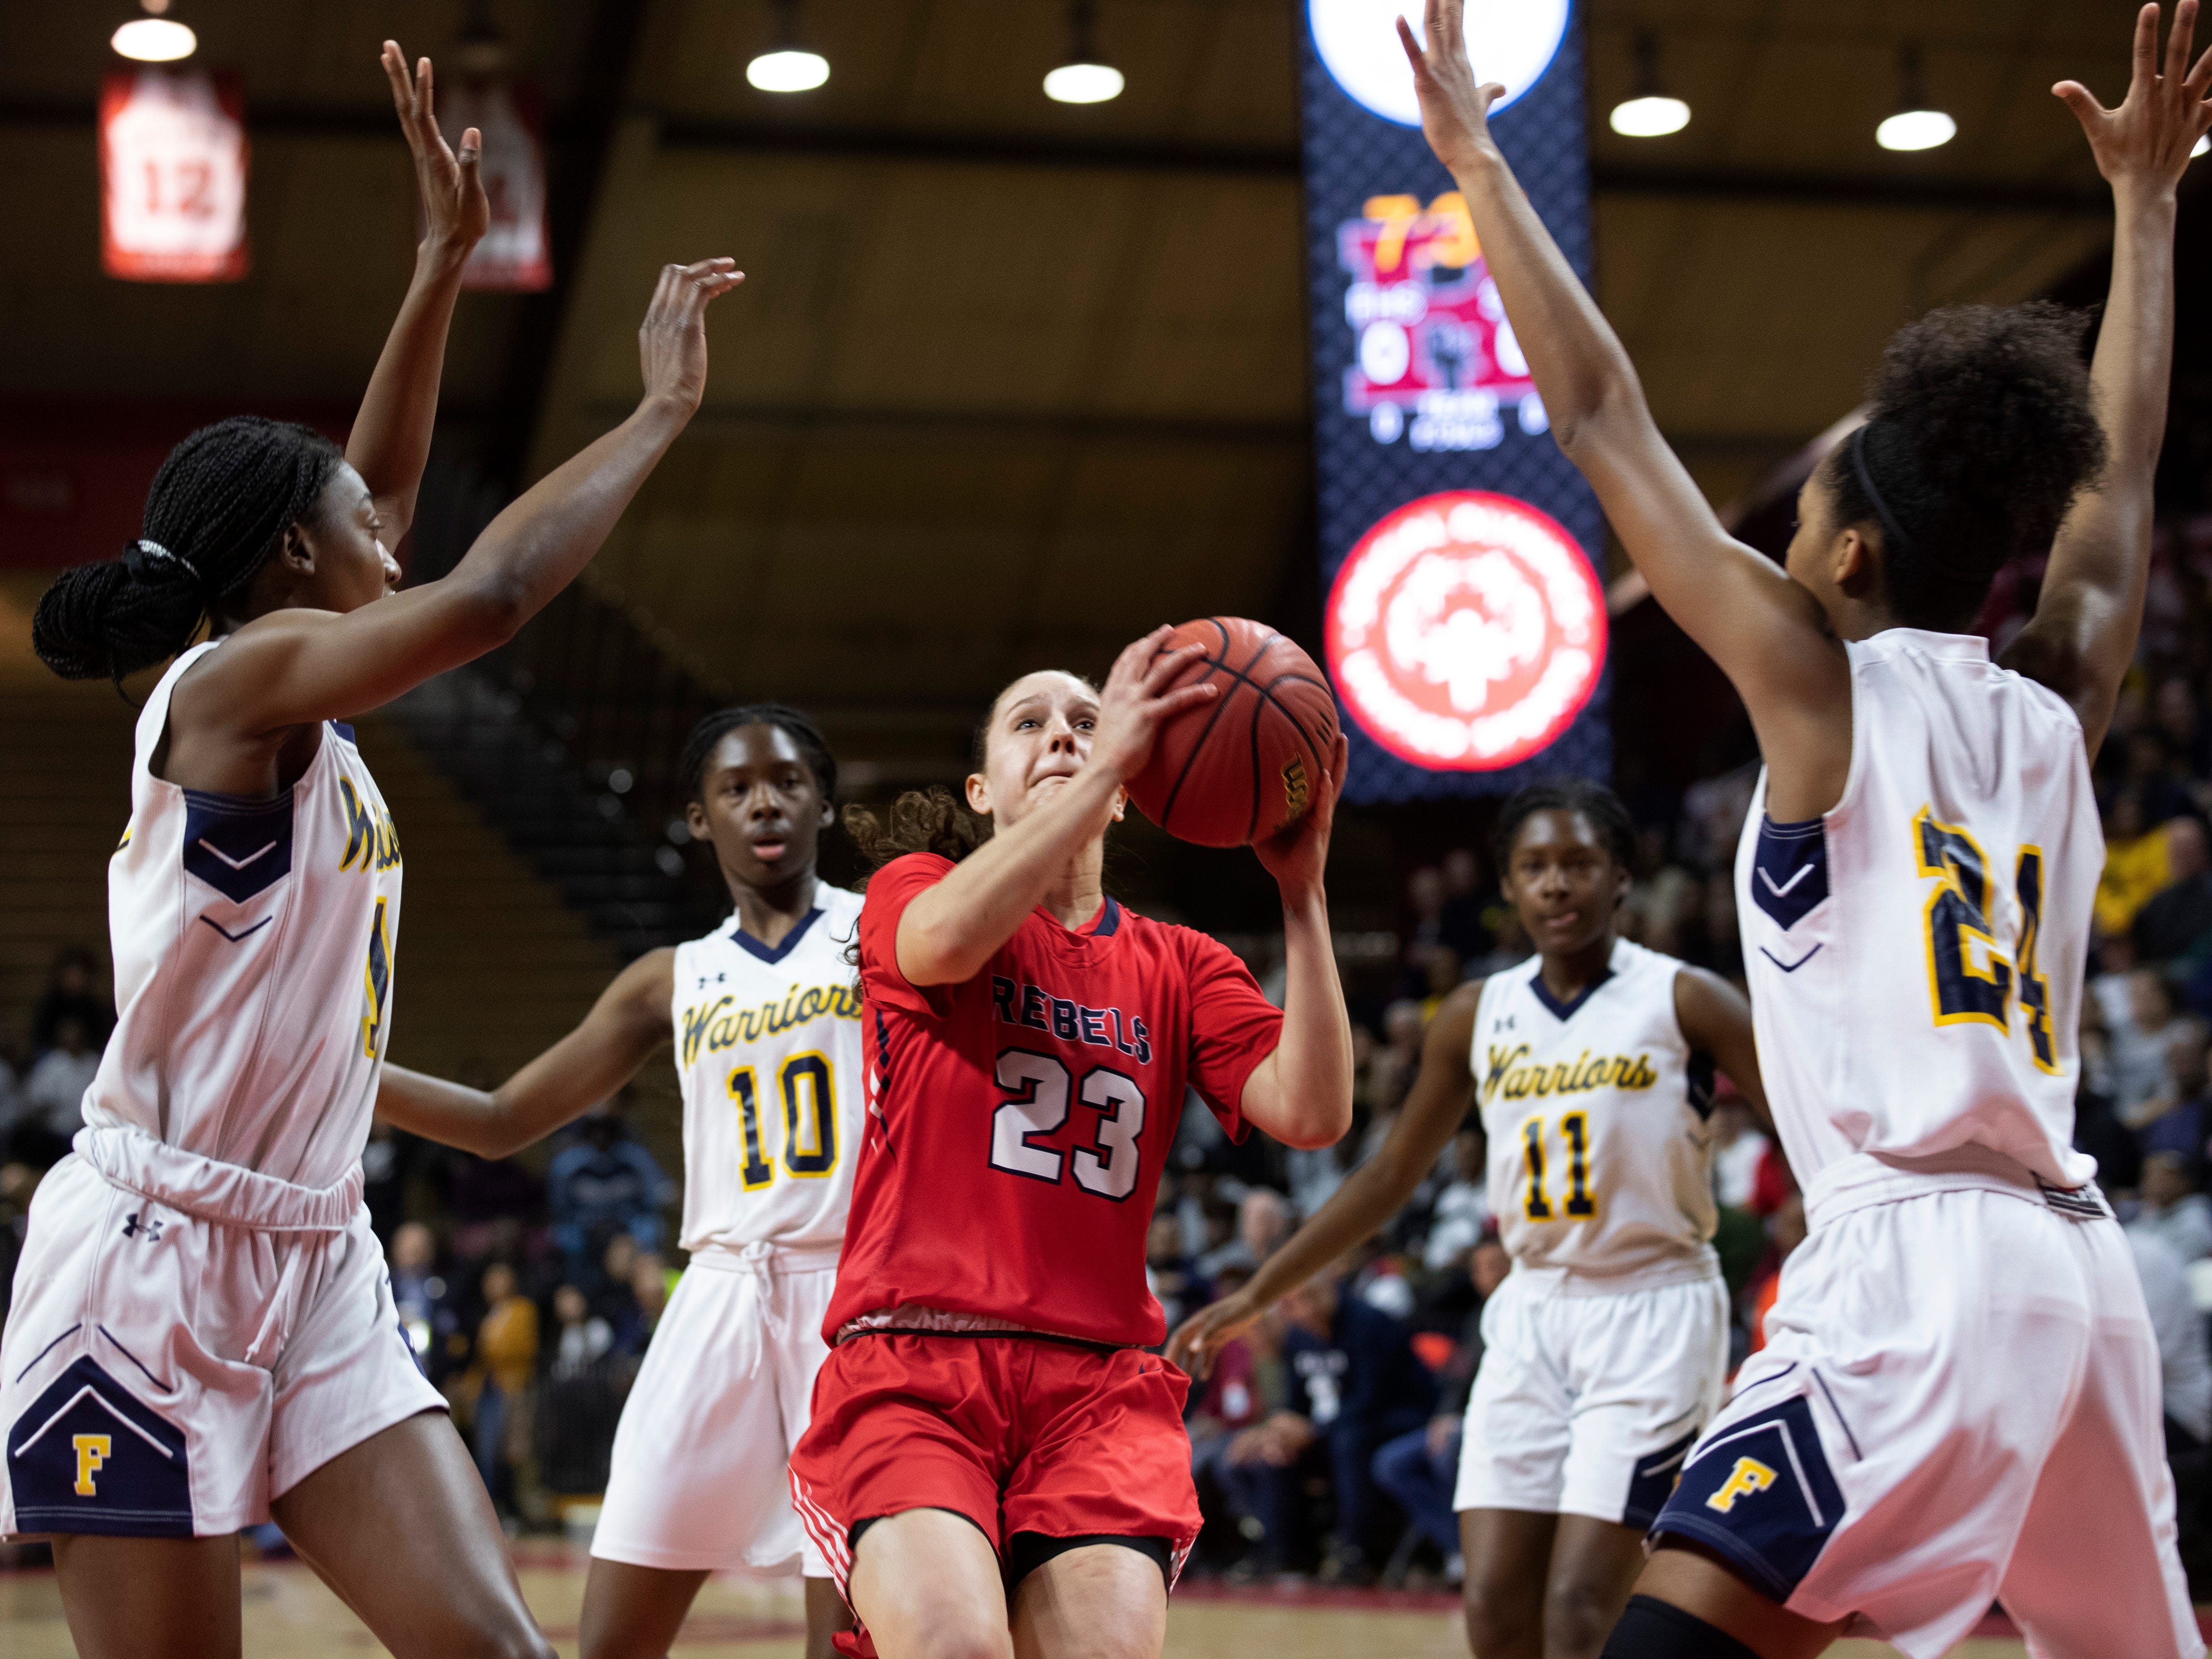 Michelle Sidor (23) of Saddle River Day drives up the middle during first-half action. Franklin vs. Saddle River Day in 2019 NJSIAA Tournament of Champions final in Piscataway, N.J. on March 17, 2019.